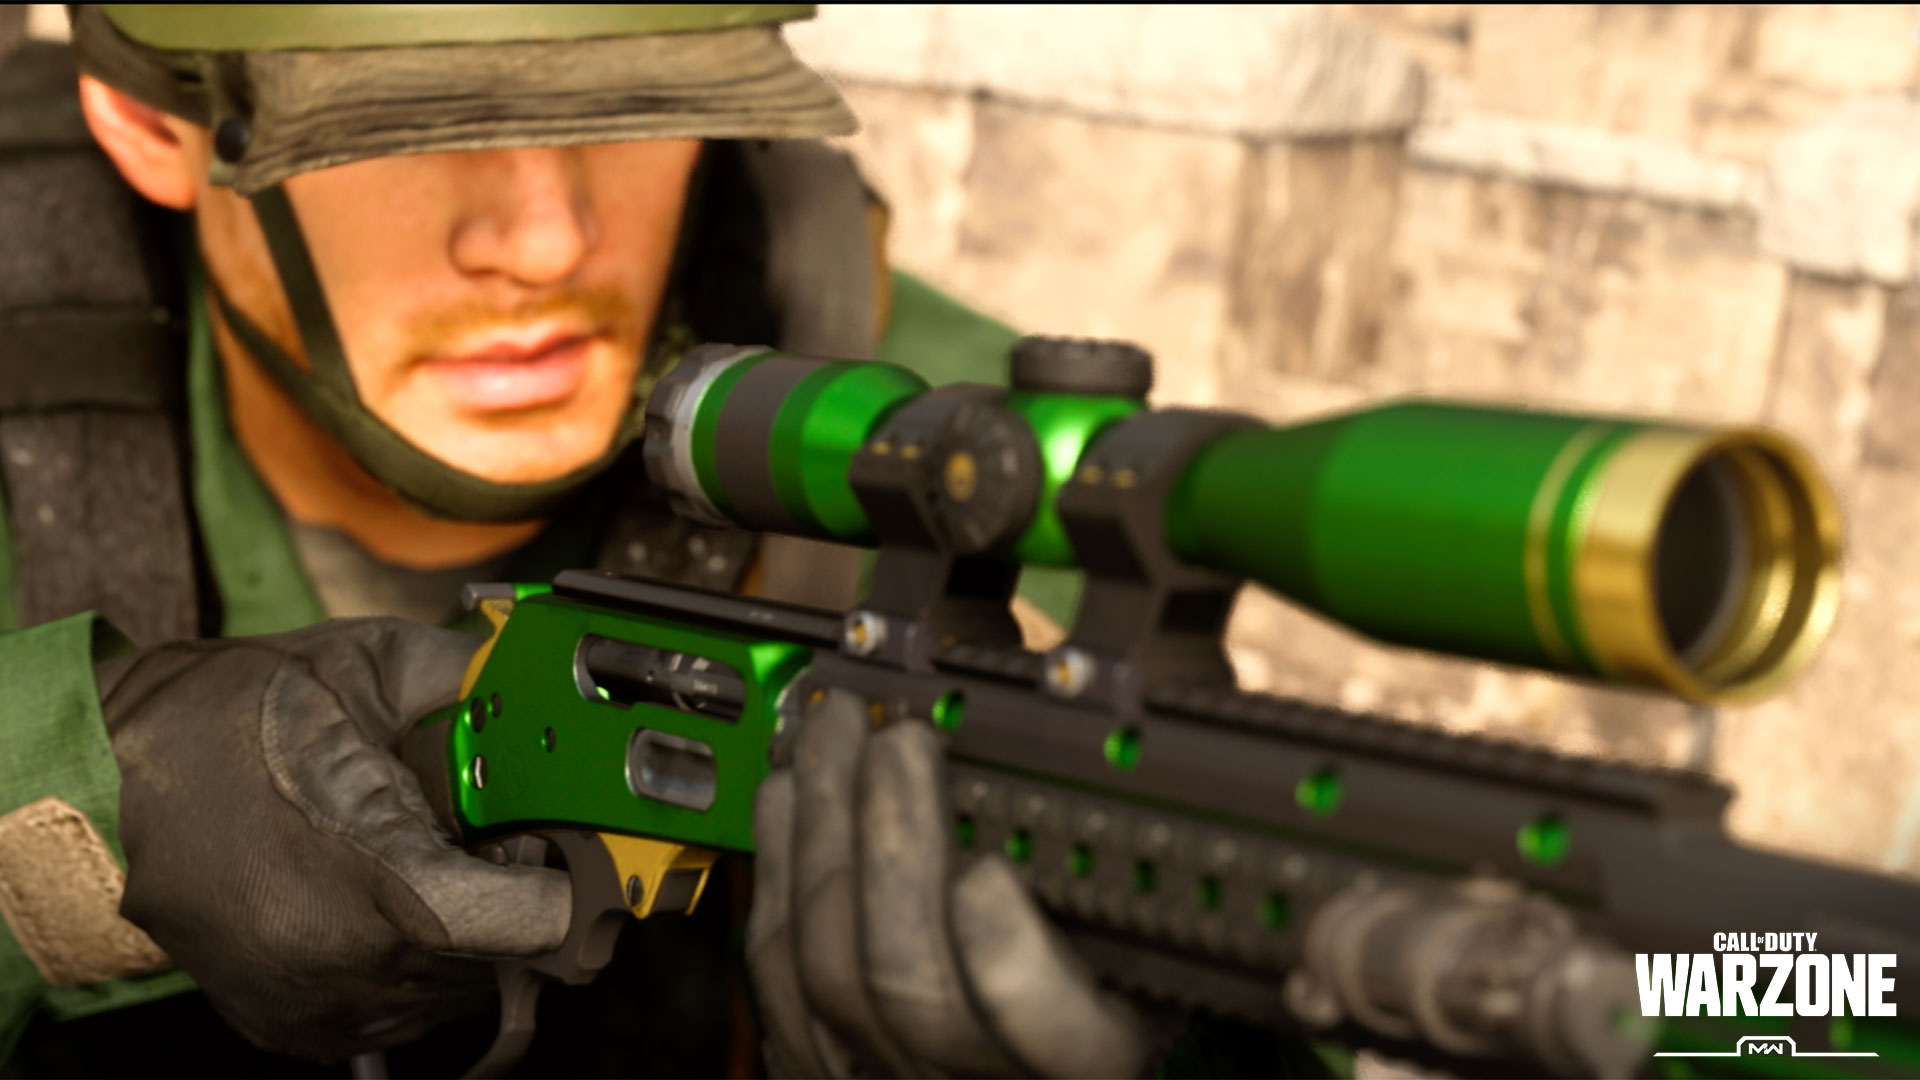 Feeling Lucky in Warzone: 10 Tips to Increase Your Odds - Image 2